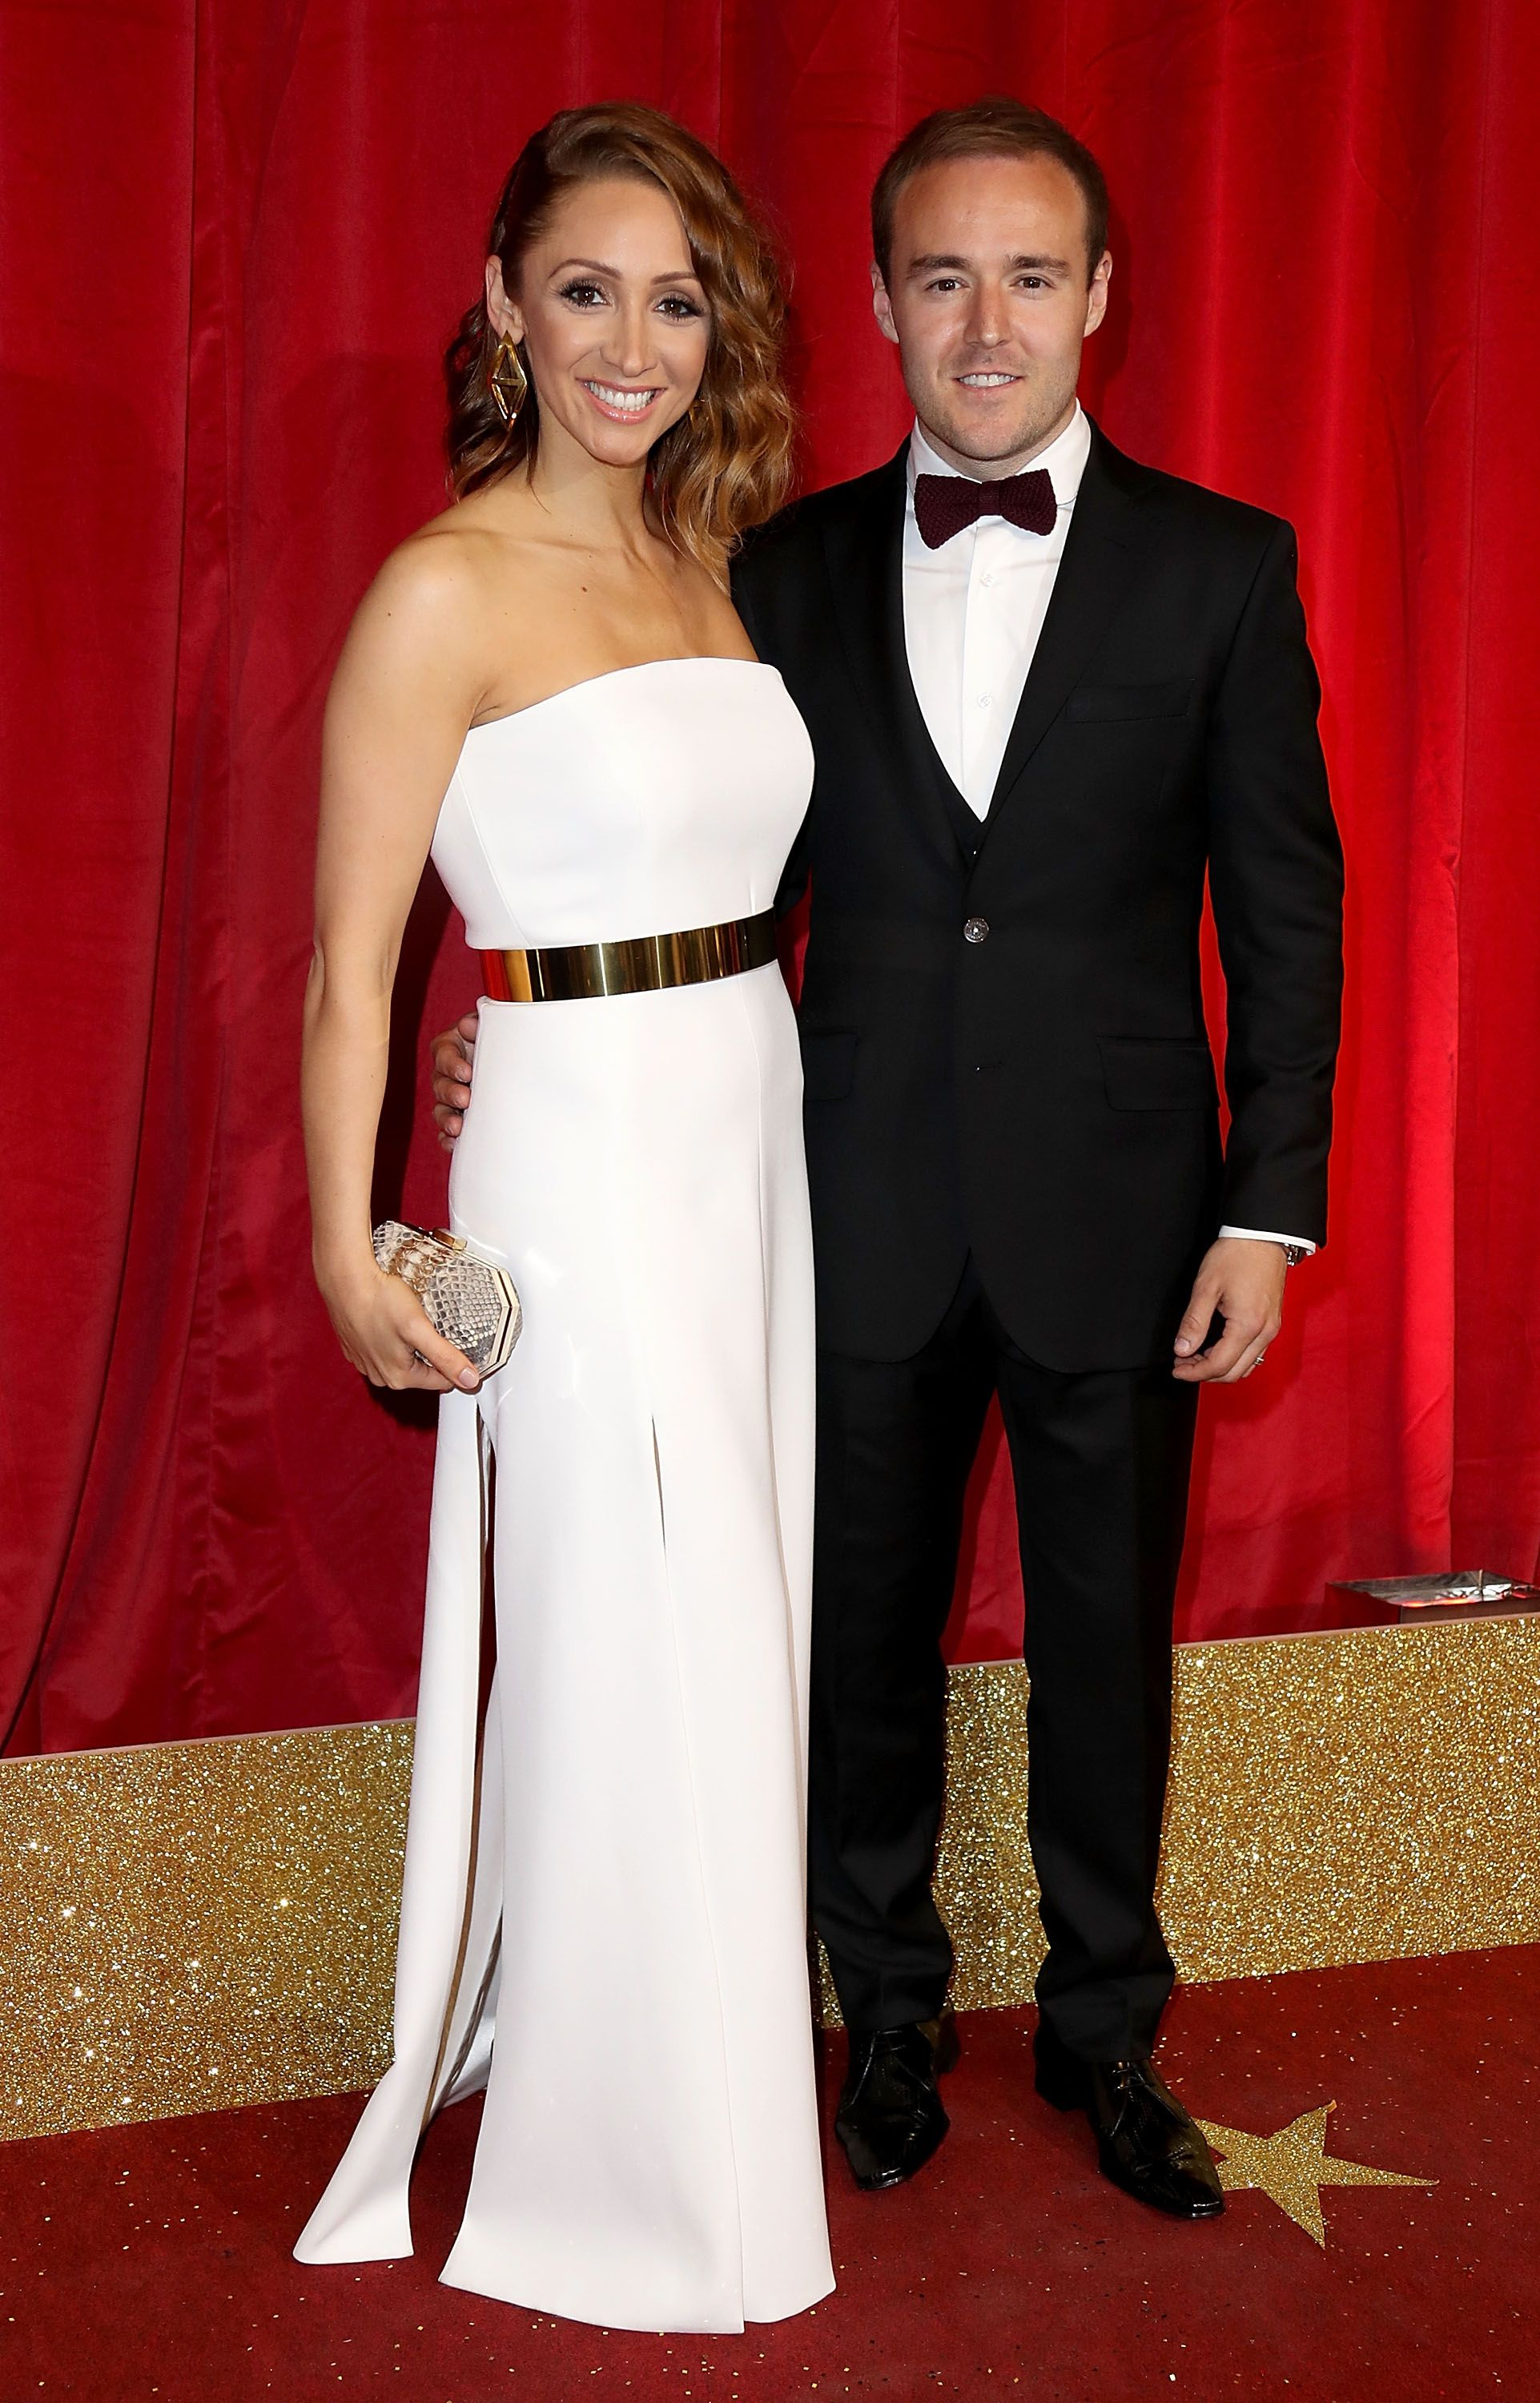 """Former Coronation Street star Lucy-Jo Hudson says co-parenting with ex Alan Halsall can be """"difficult"""""""